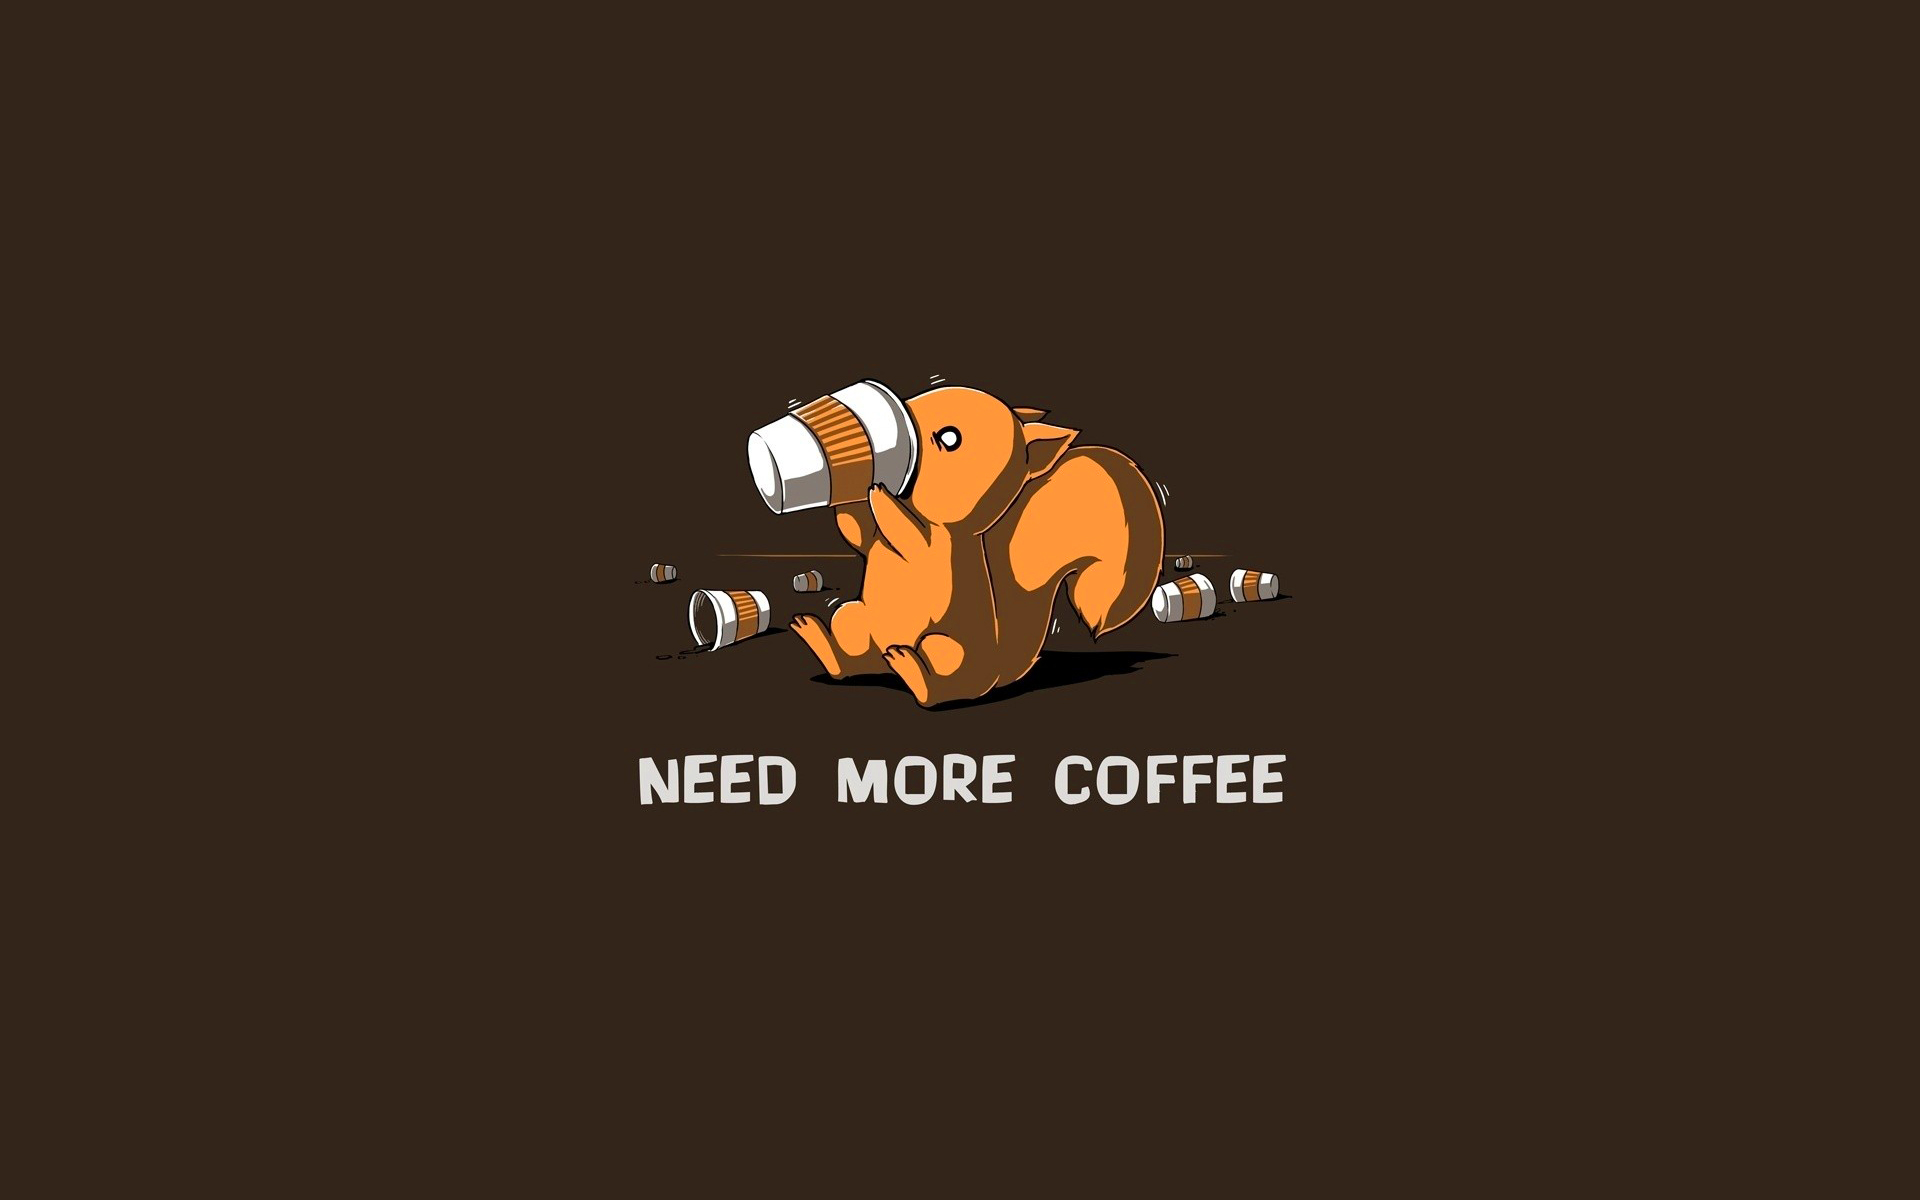 Need More Coffee Wallpaper